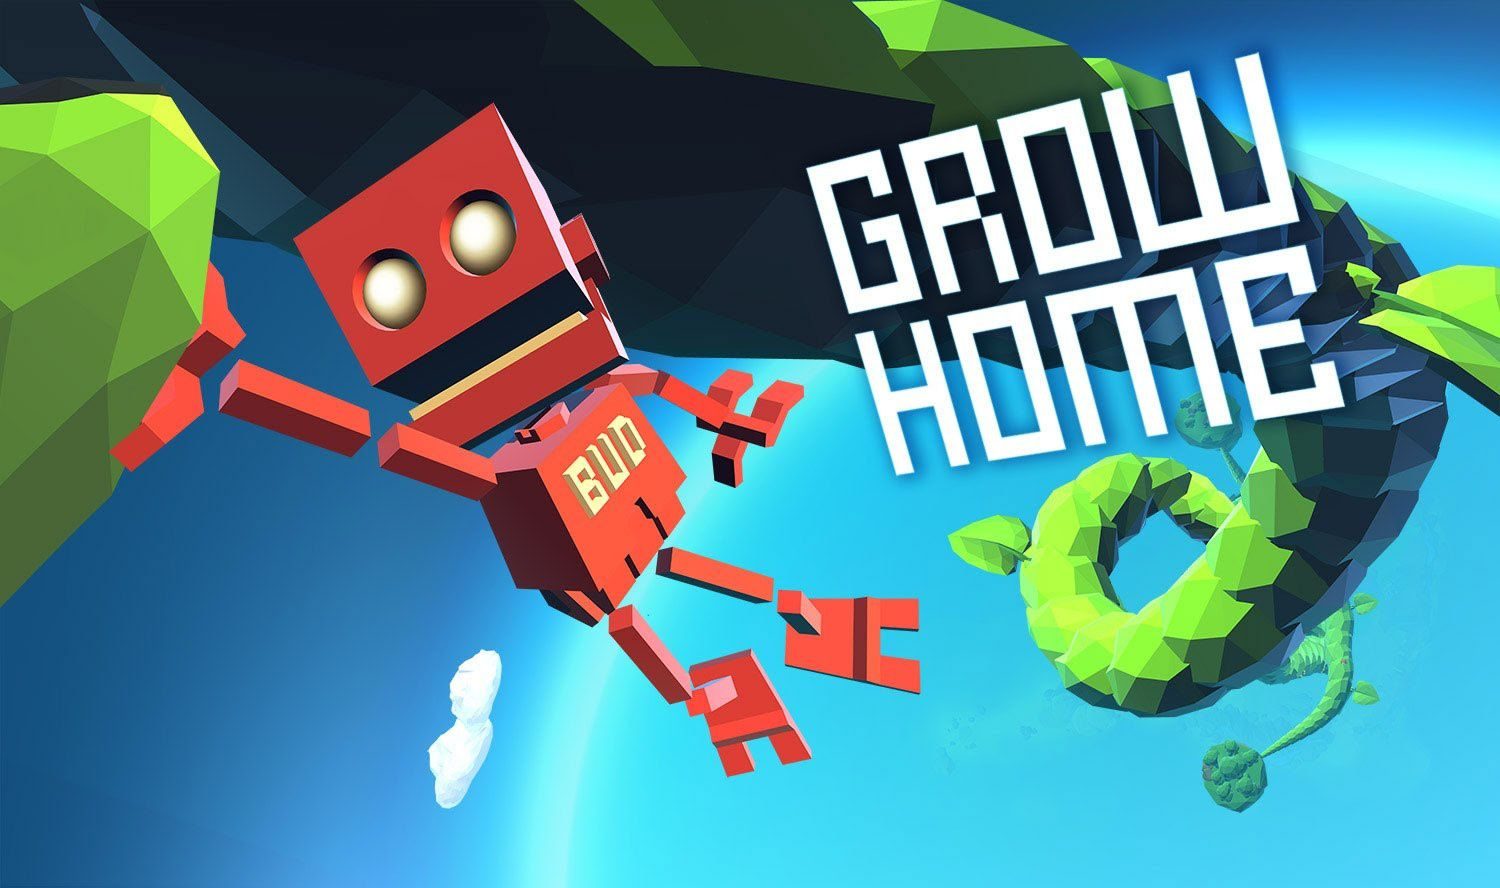 (Test) J'ai joué à Grow Home sur PS4